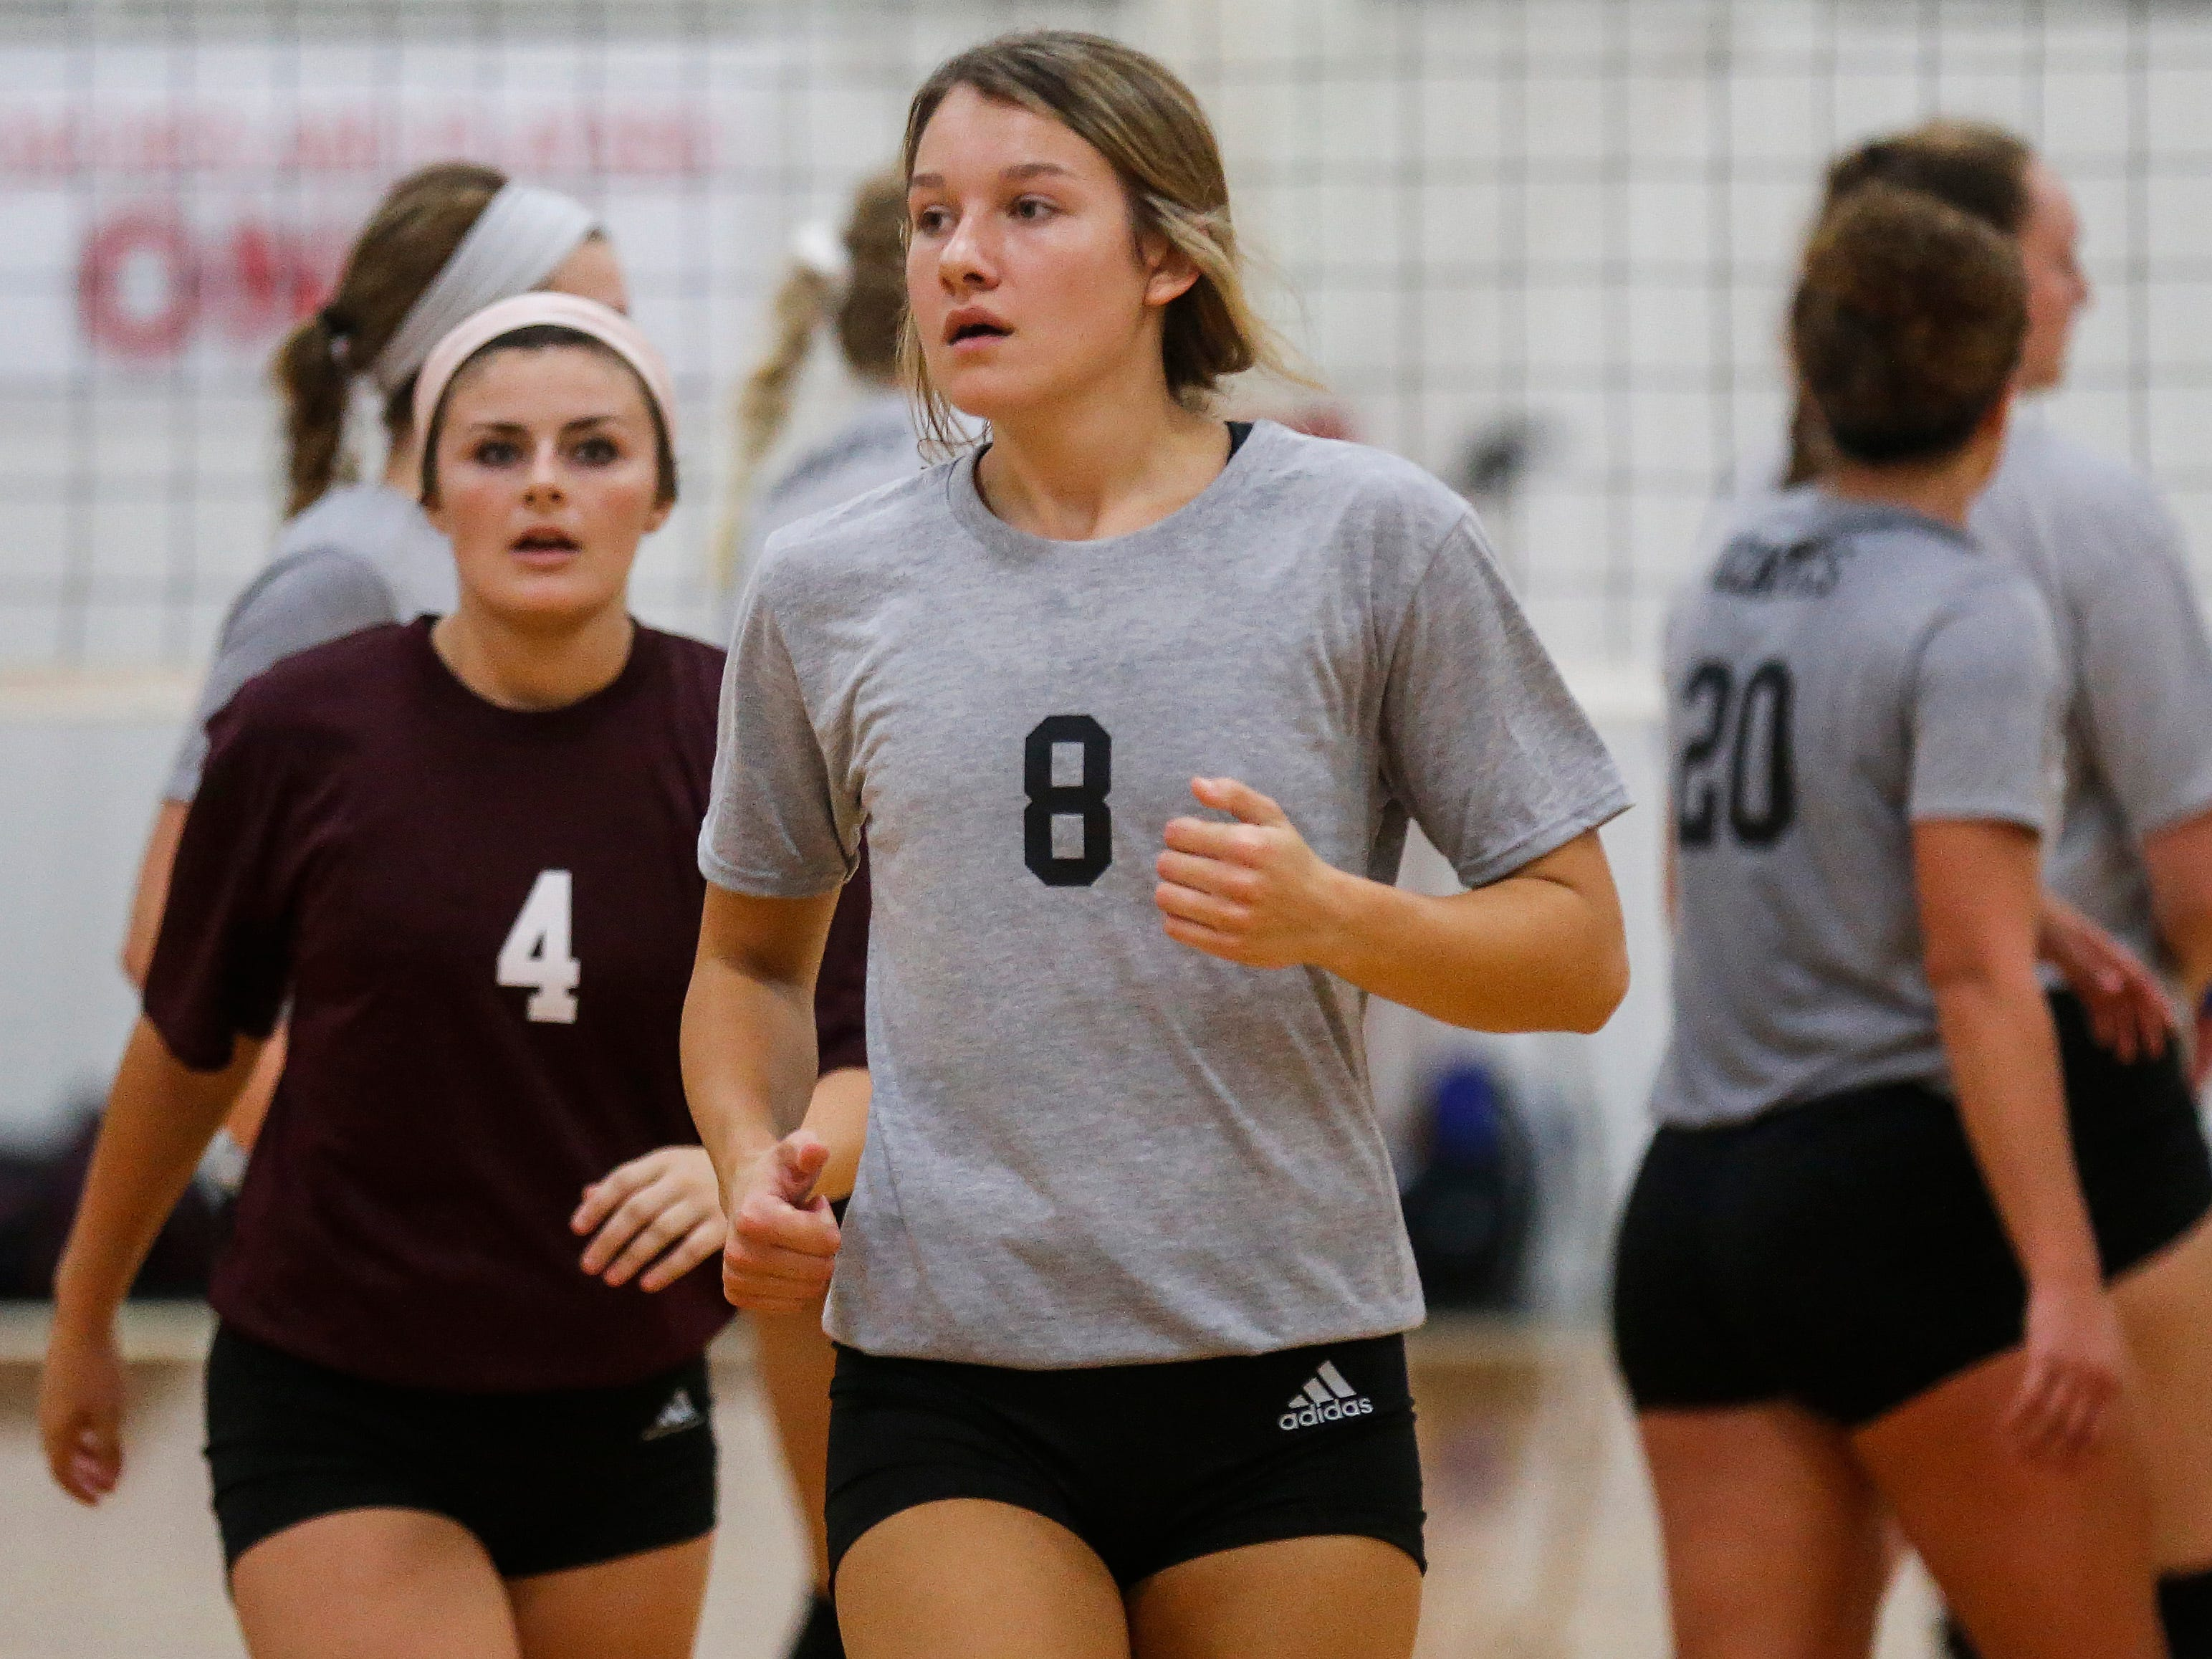 Rielly Dobbs (8), of the College of the Ozarks Bobcats, and her teammates wore gray T-shirts and Adidas shorts during their game against the Williams Baptist Eagles during the 2018 Evangel Classic at The Courts in Springfield, MO., on Saturday, Sep. 8, 2018.